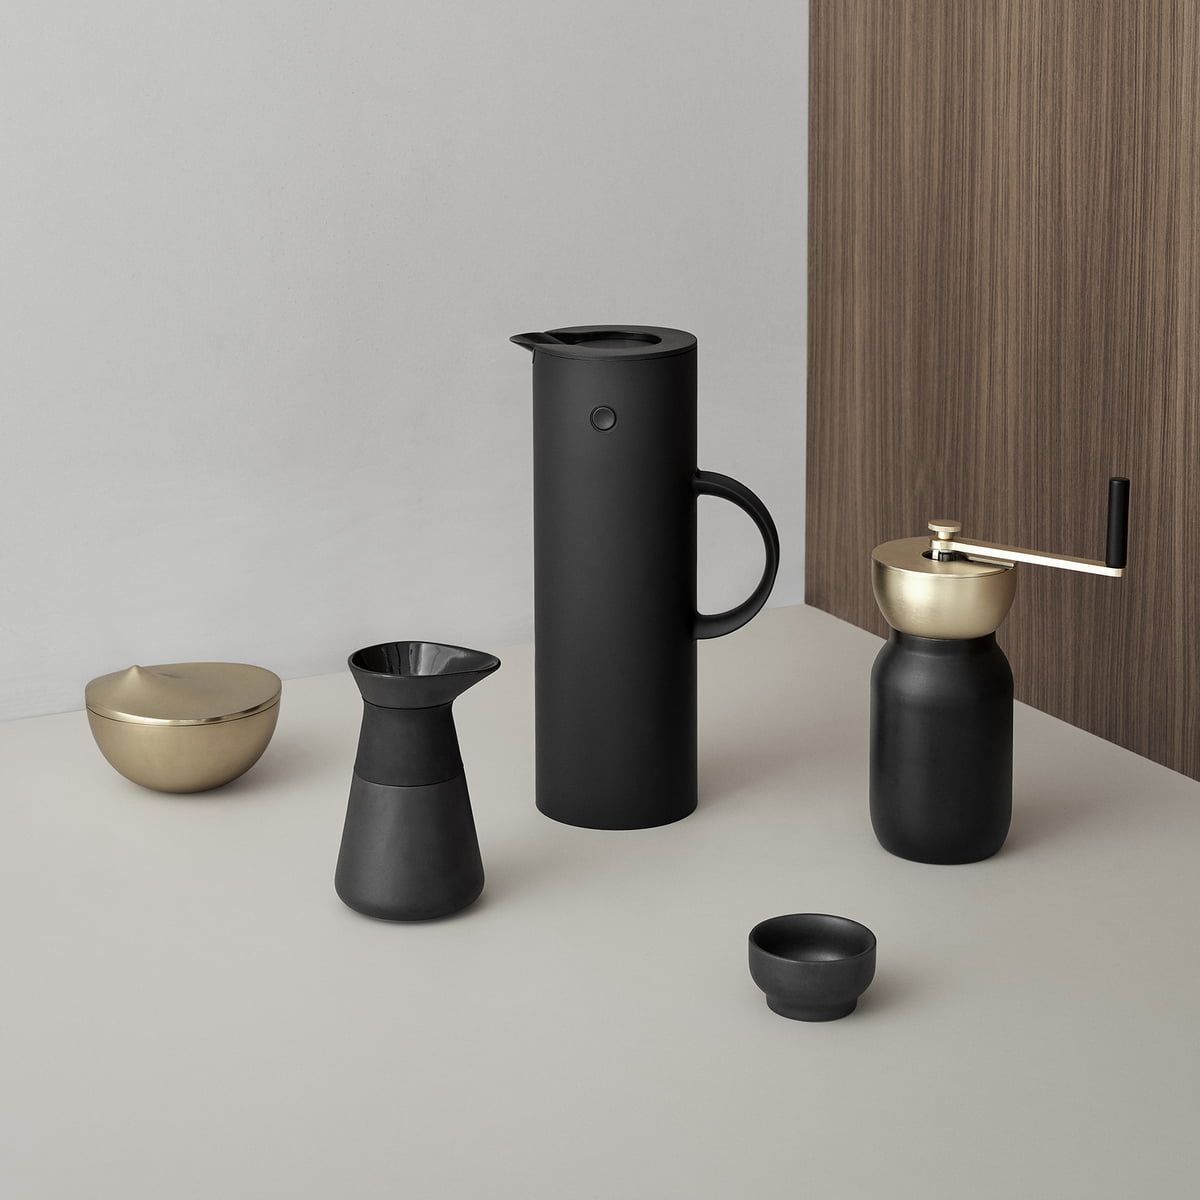 collar coffee grinder by stelton online. Black Bedroom Furniture Sets. Home Design Ideas